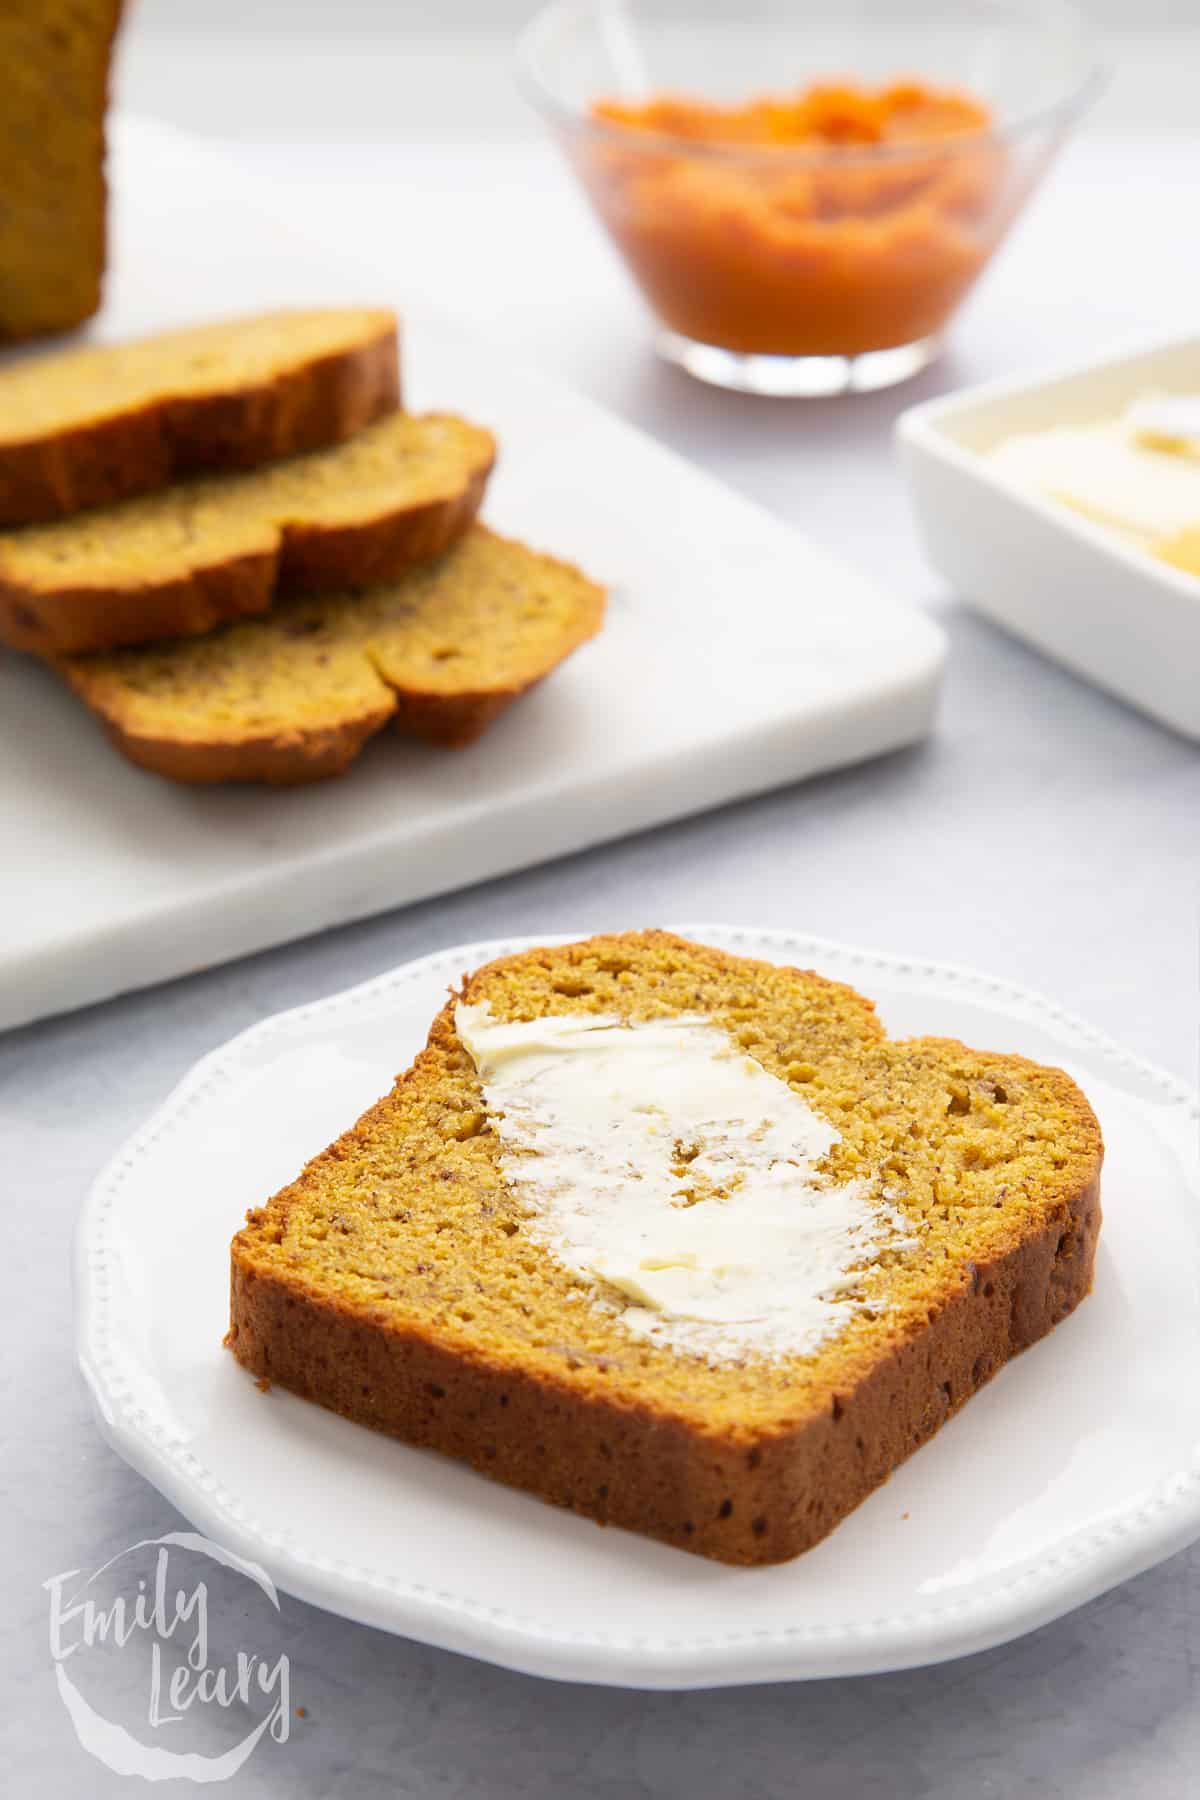 A buttered slice of pumpkin banana bread on a white plate.